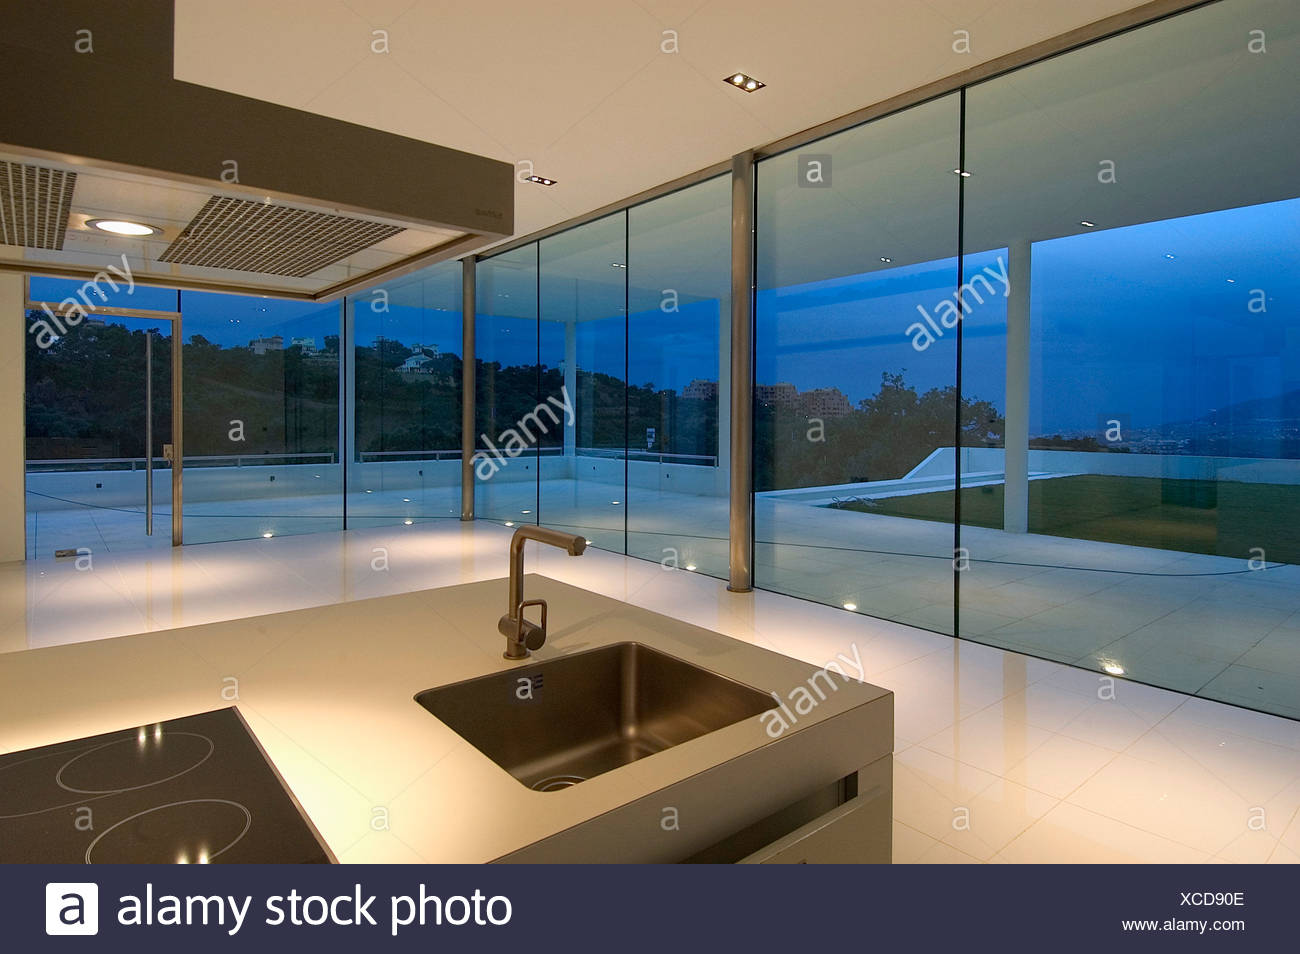 Sink In Island Unit In Modern Spanish Kitchen With Glass Walls And View Of Terrace At Night Stock Photo Alamy